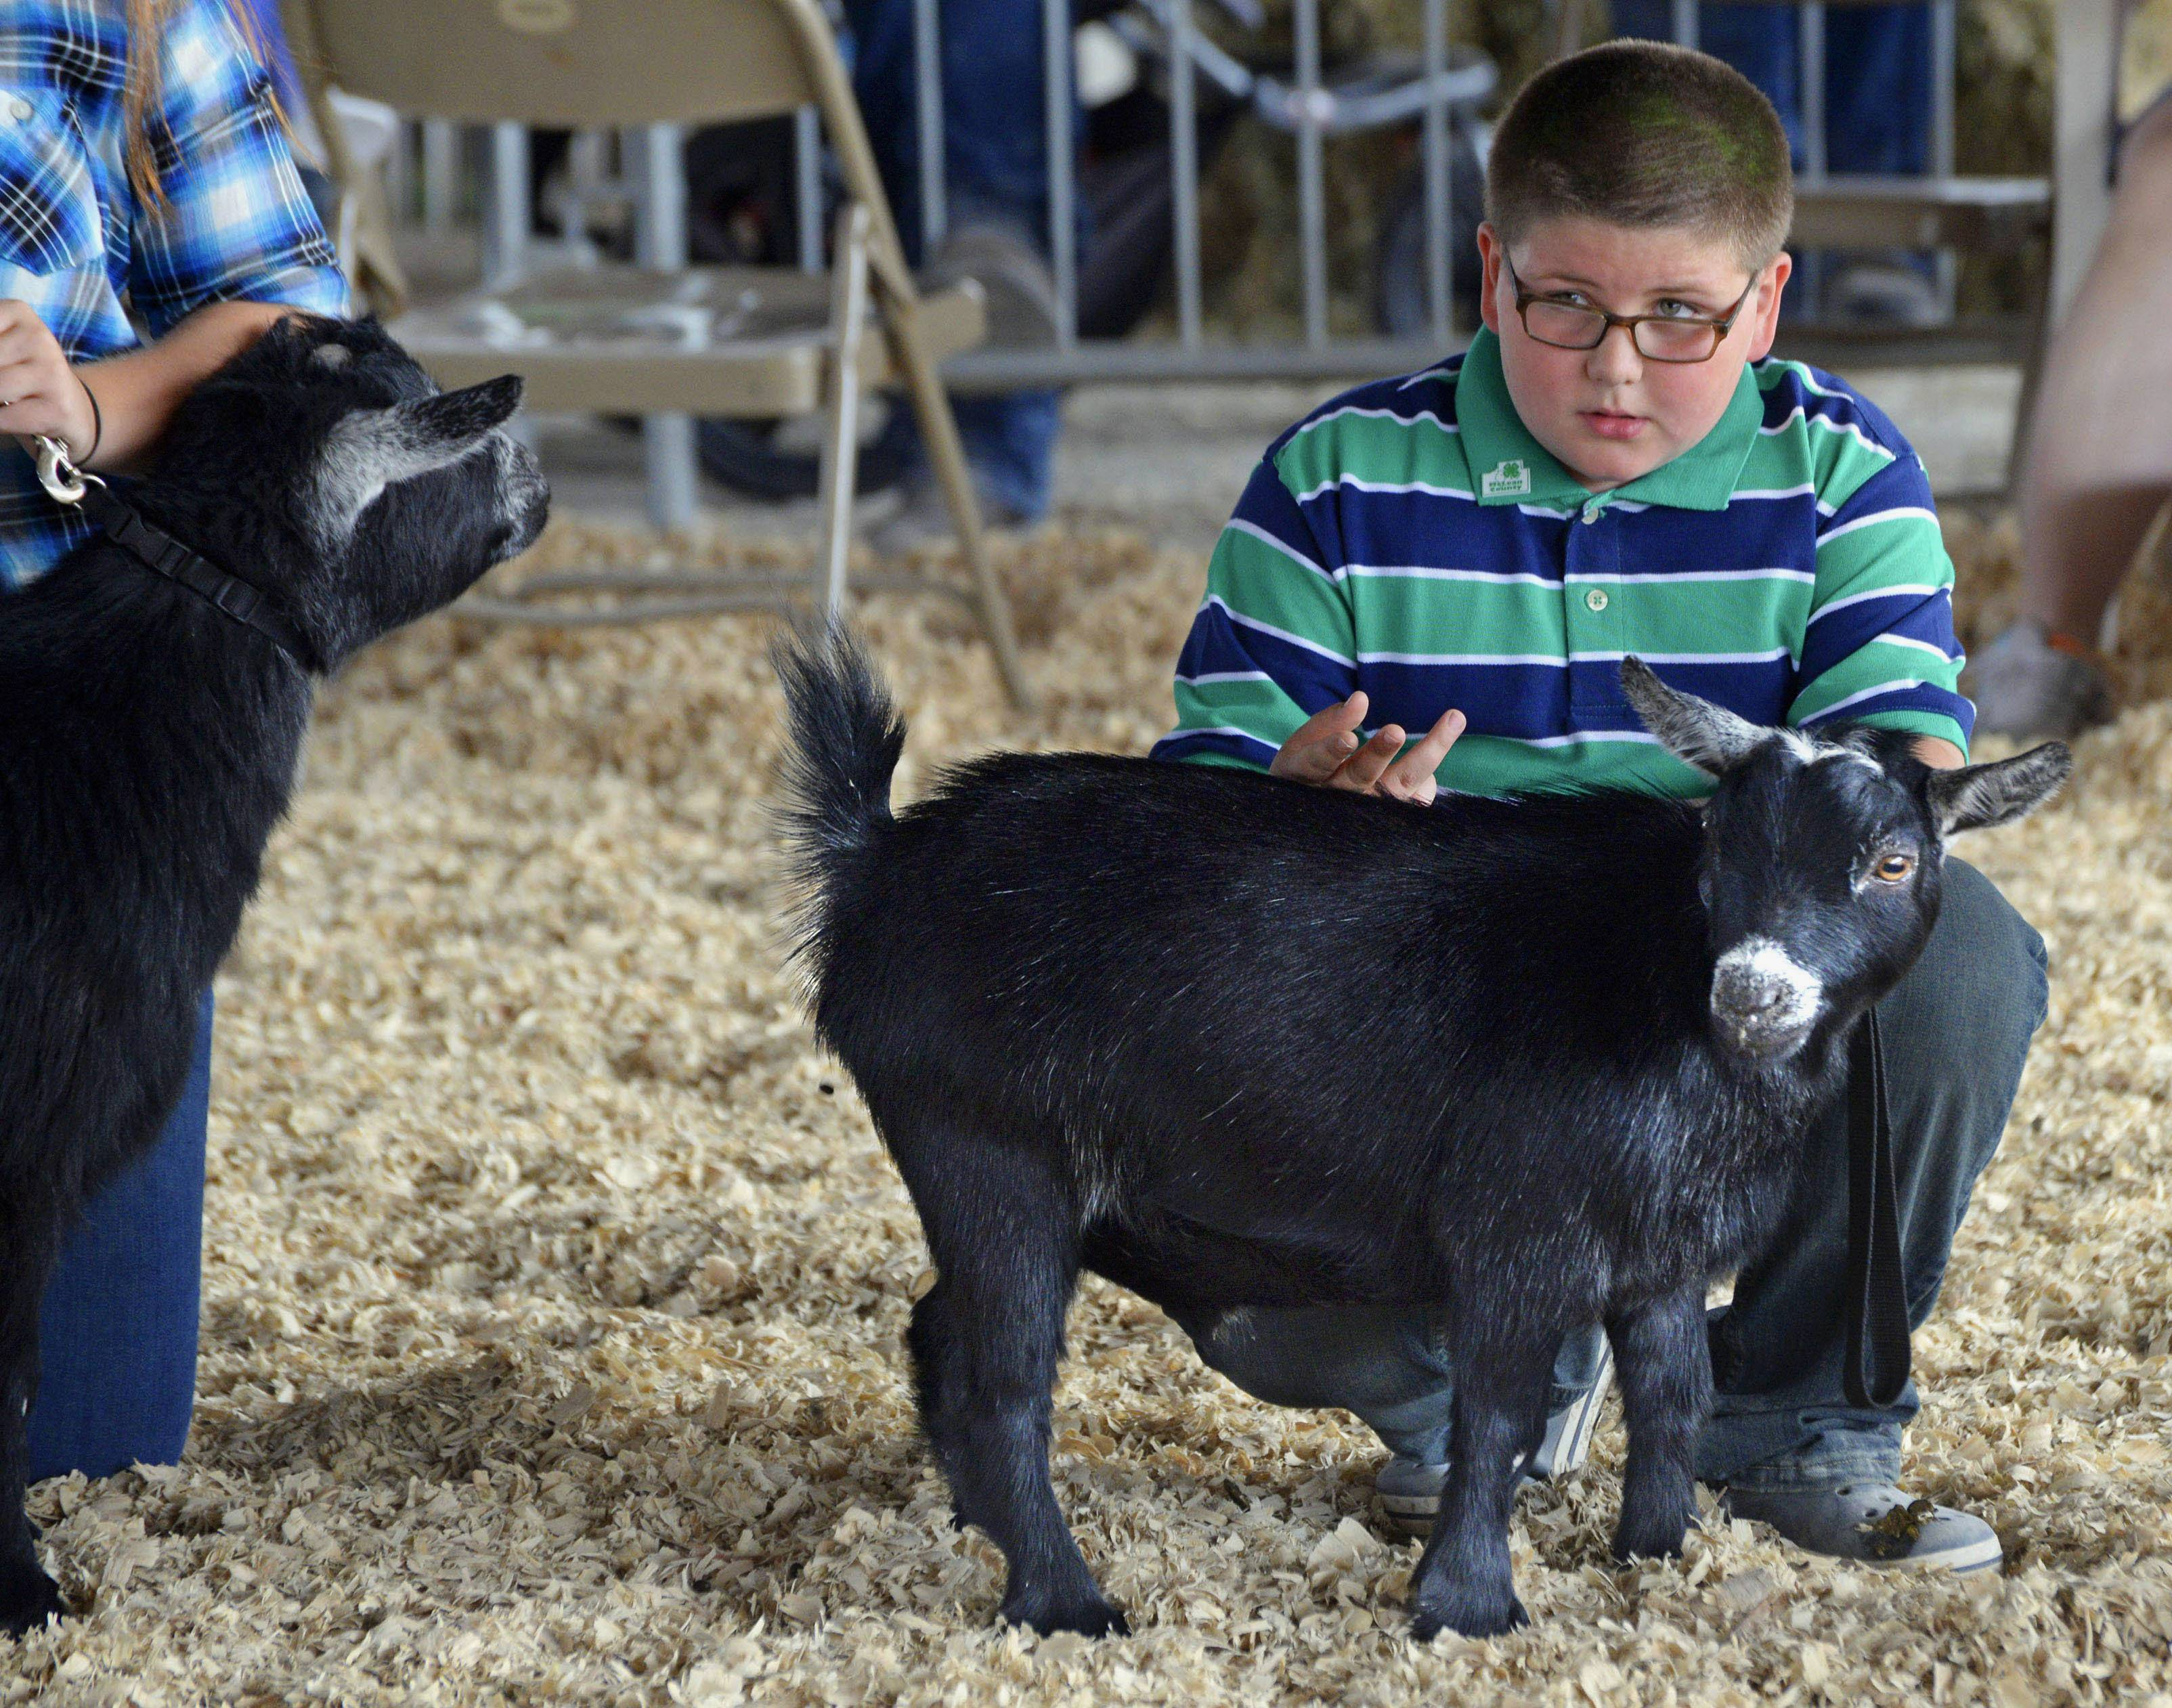 A.J. Hepner, 10, of Colfax, watches for directions from a judge while showing a pygmy goat at the McLean County Fair in Bloomington.